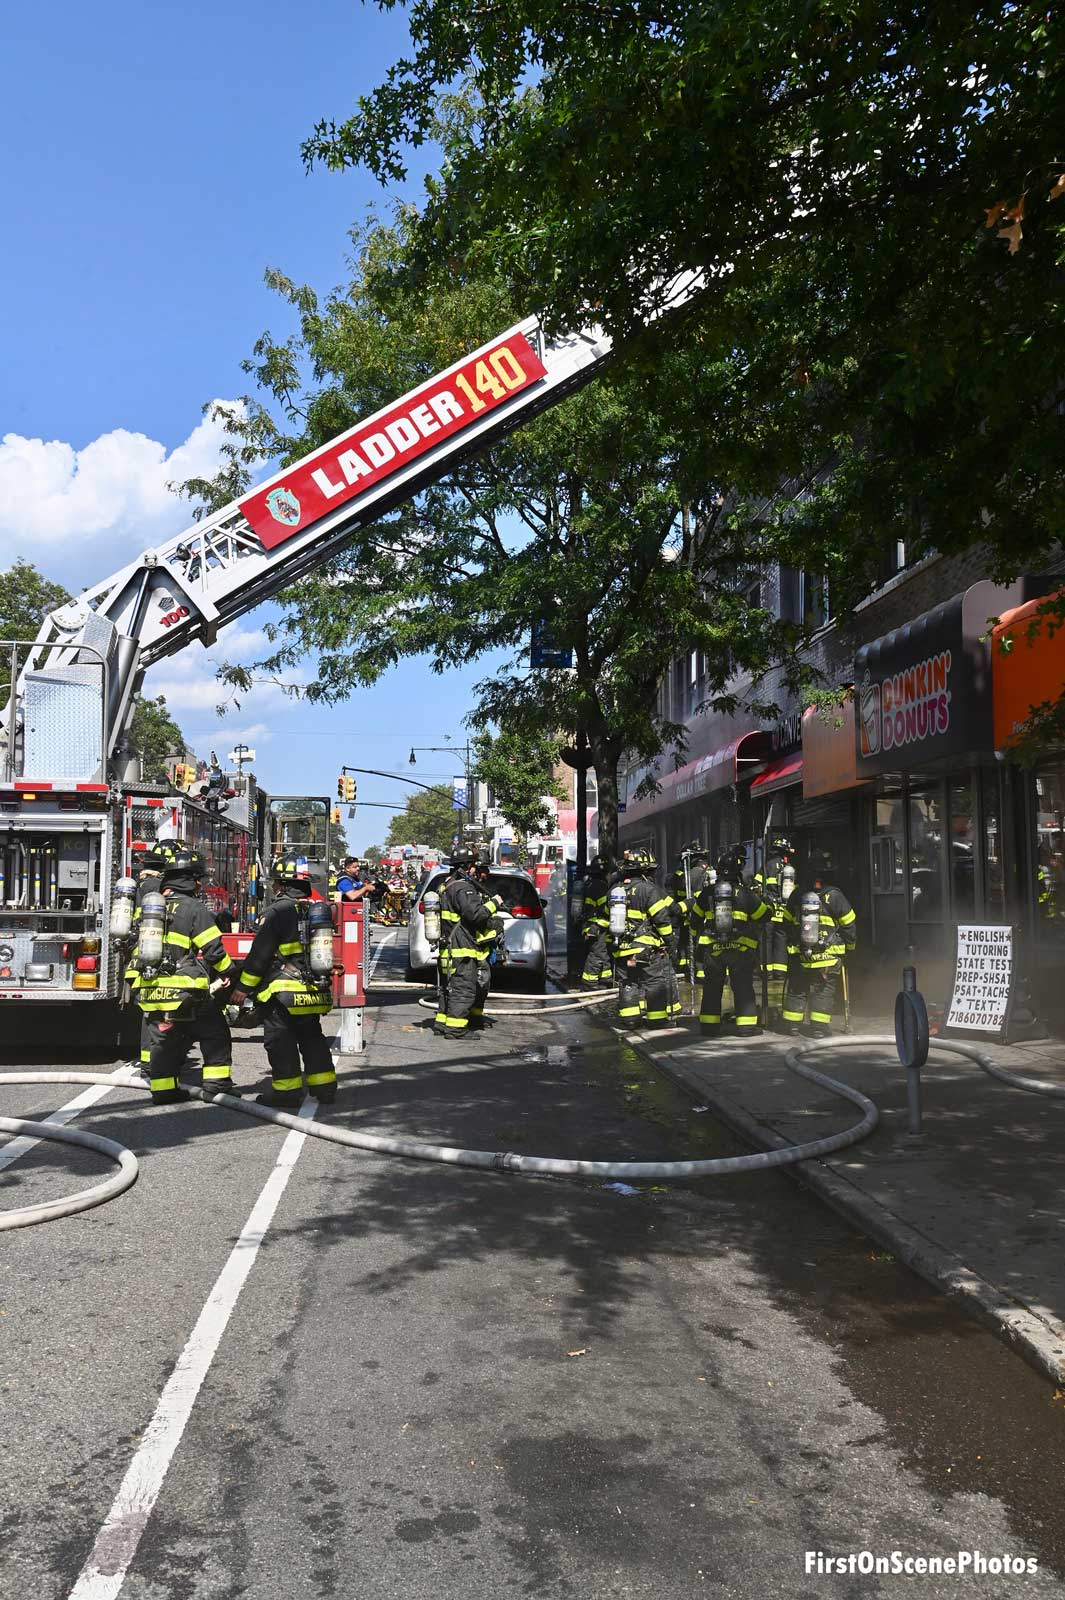 FDNY ladder truck at the scene of a fire in Queens